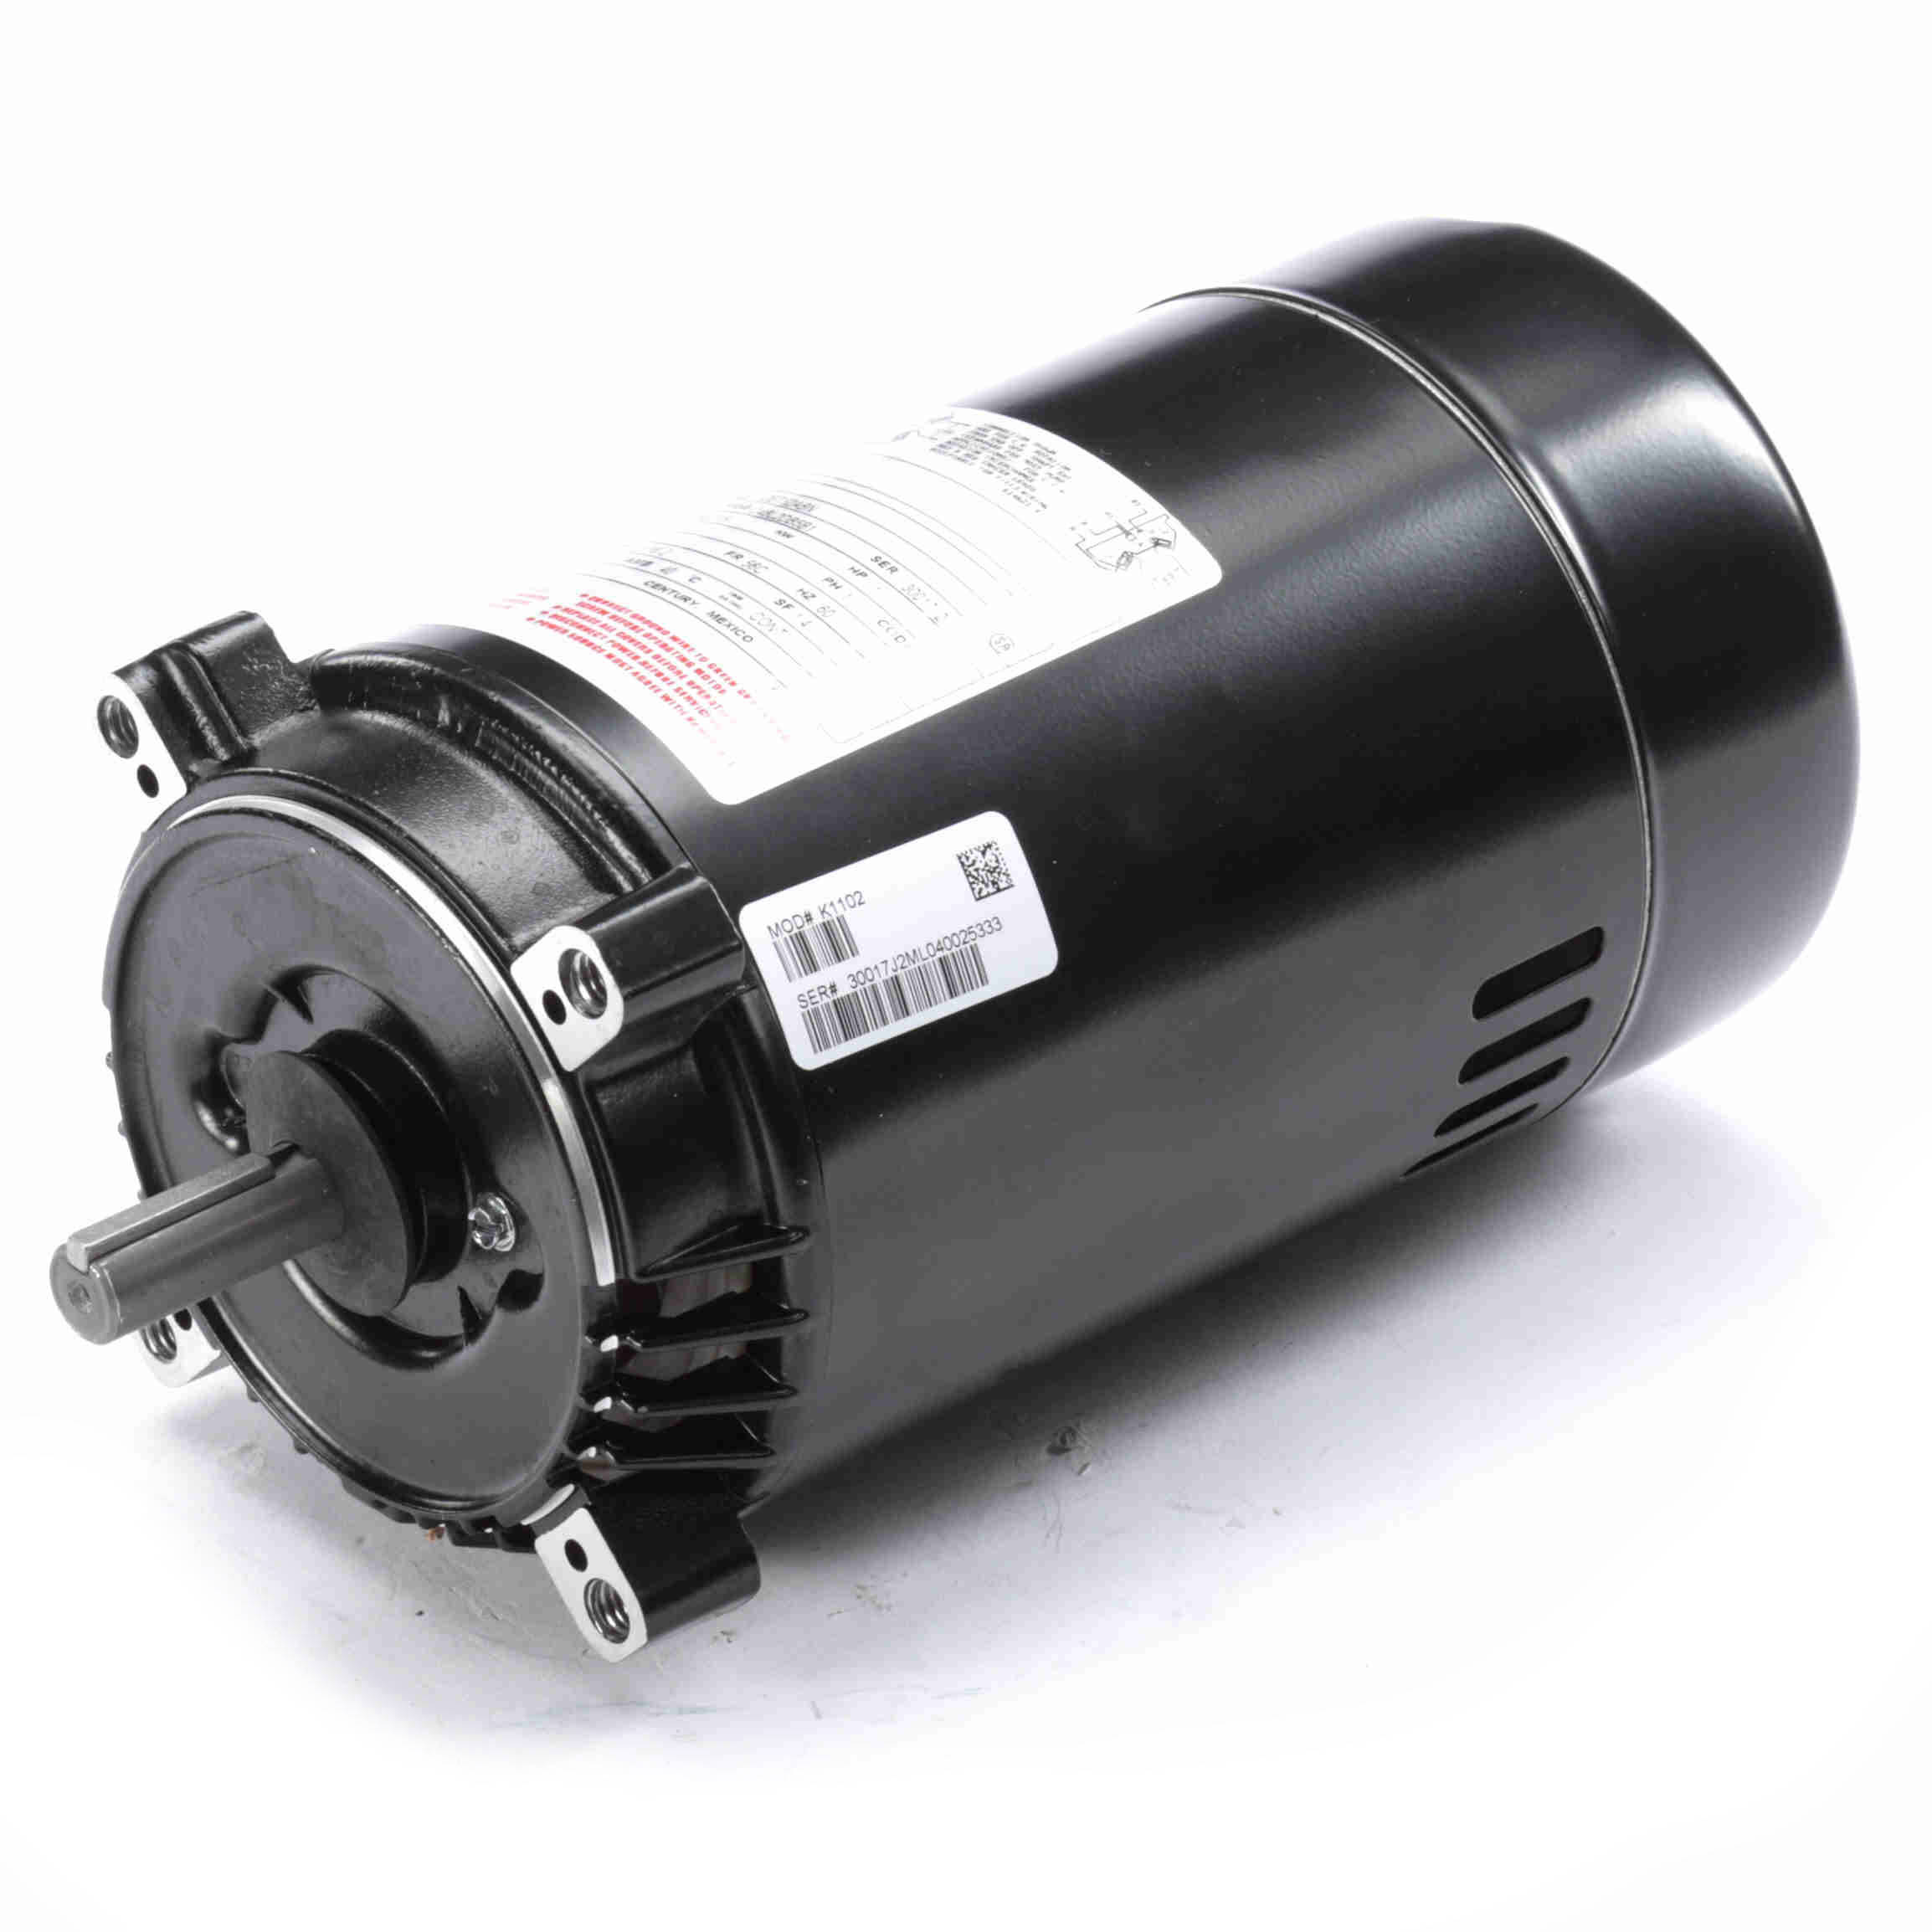 K1102 Century 1hp Pool Spa Jet Pump Electric Motor 3450rpm